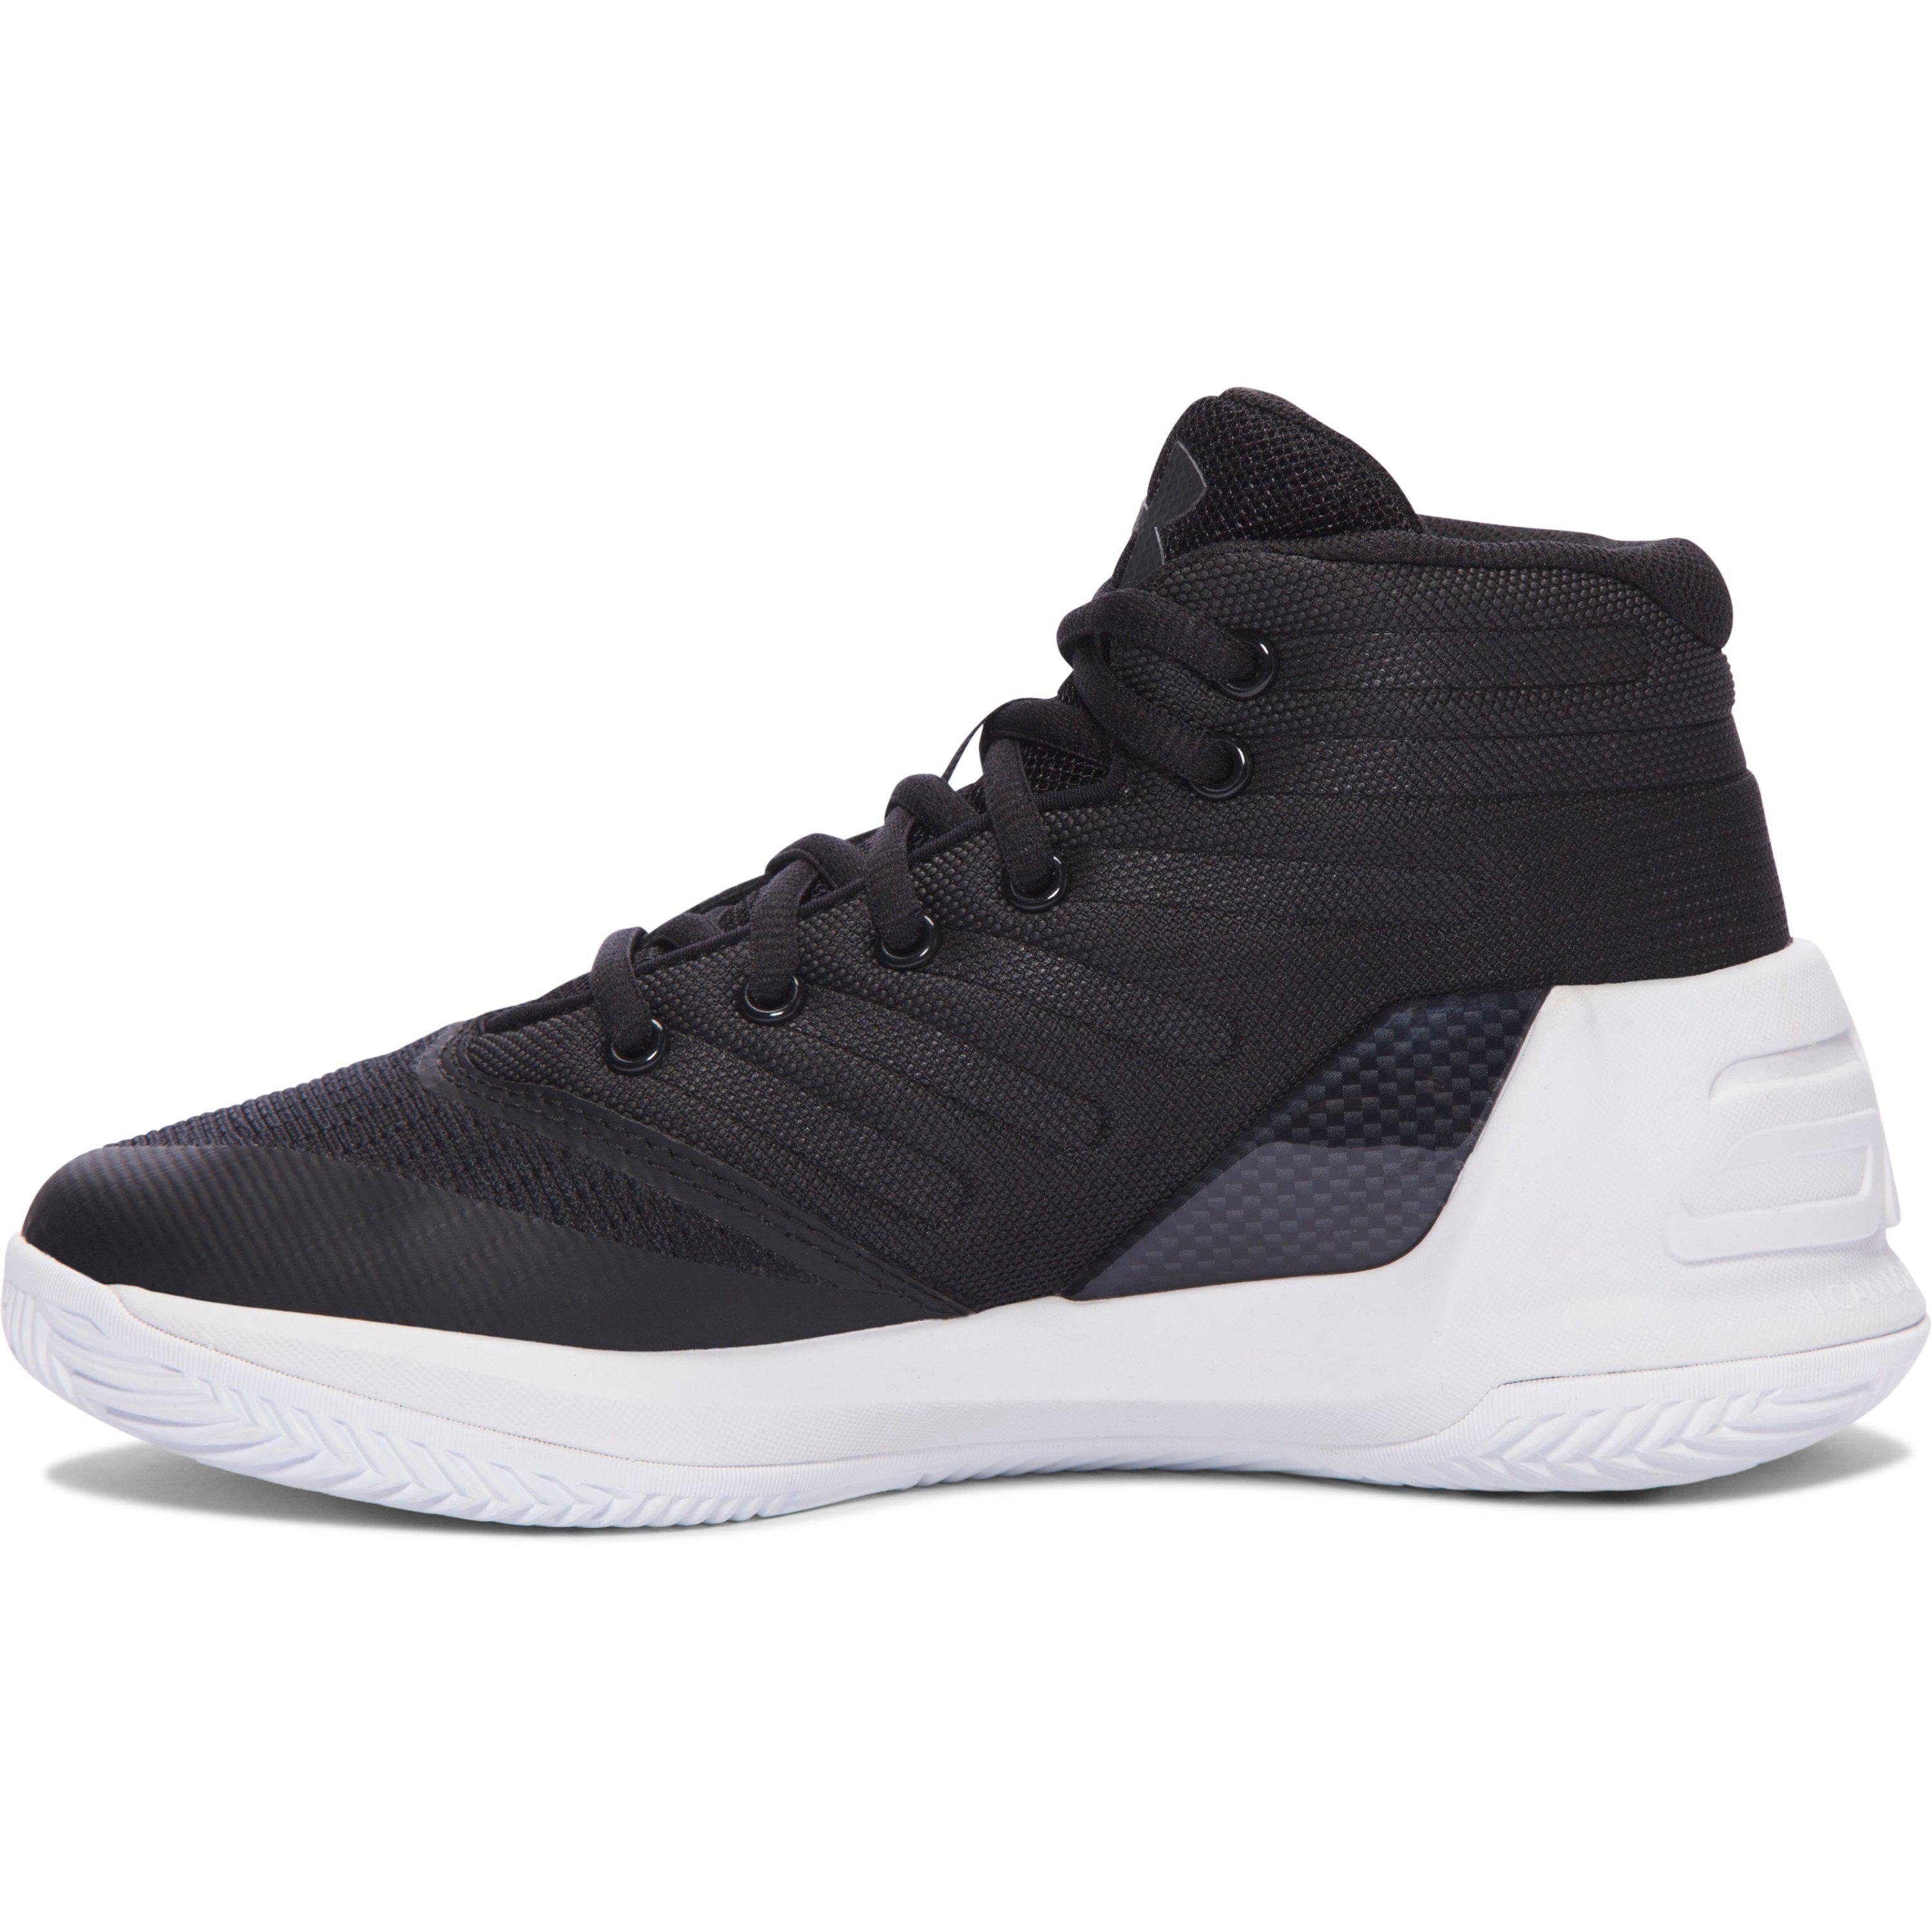 57e0b55bcea Lyst - Under Armour Pre-school Ua Curry 3 Basketball Shoes in Black ...